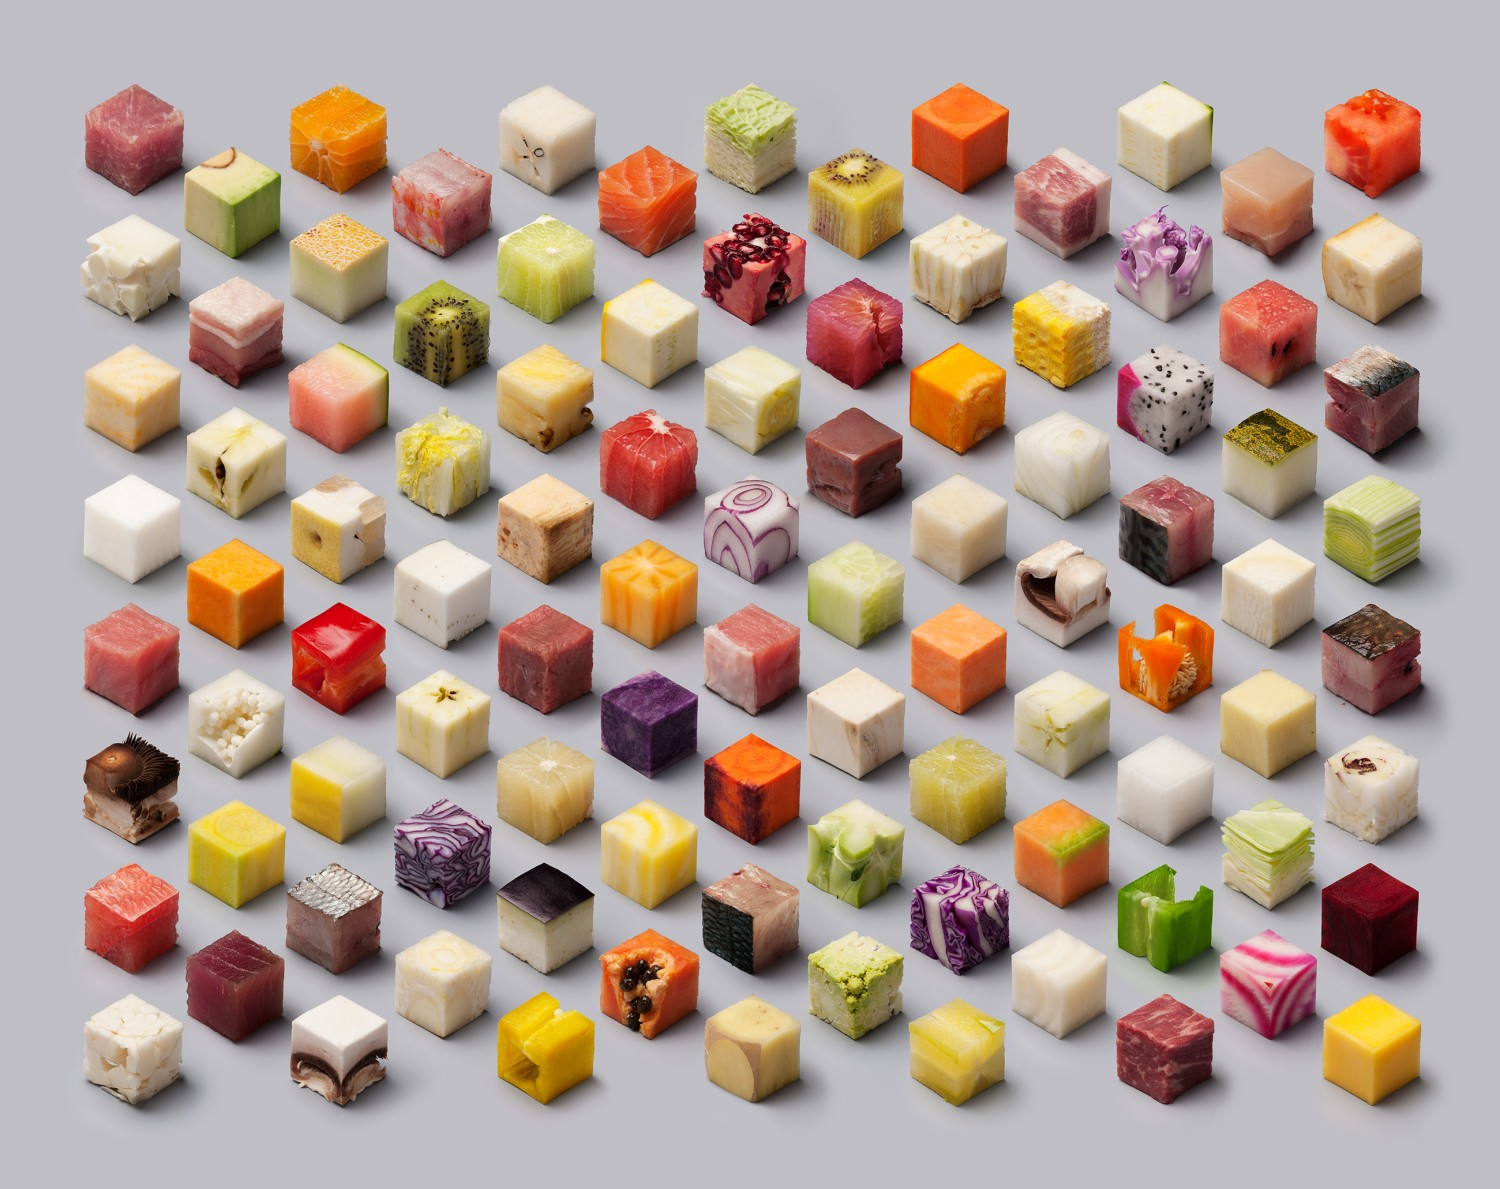 CUBES : la photo d'art culinaire par Lernert & Sander